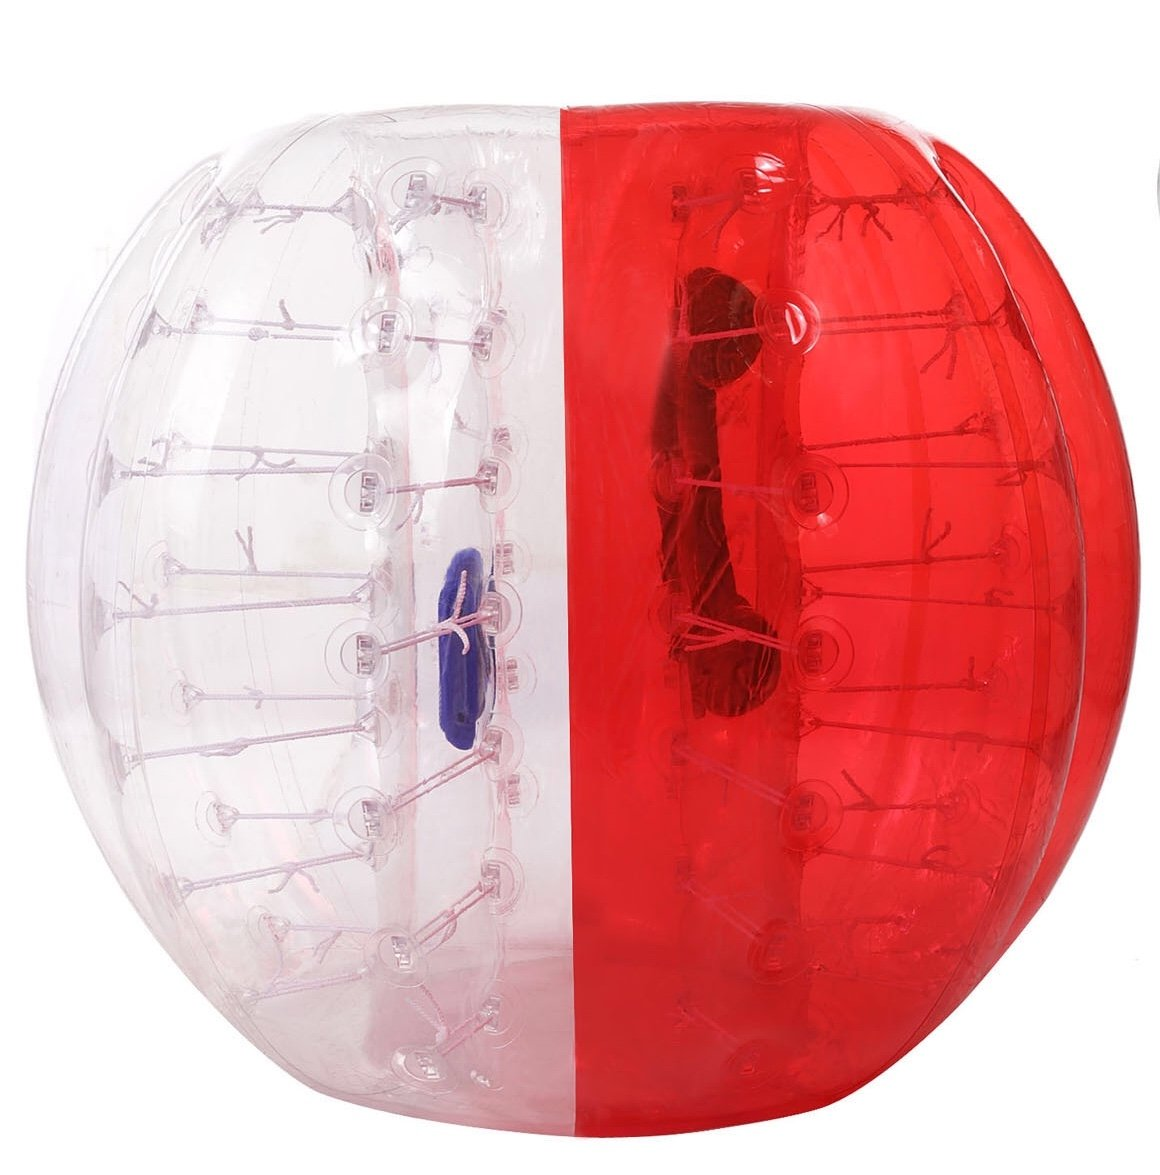 Oanon Inflatable Bumper Ball 1.2M 4FT/1.5M 5FT Diameter Bubble Soccer Ball Blow Up Toy, Inflatable Bumper Bubble Balls for Childs,Teens,Adults (White/Red 1.5M) by Oanon